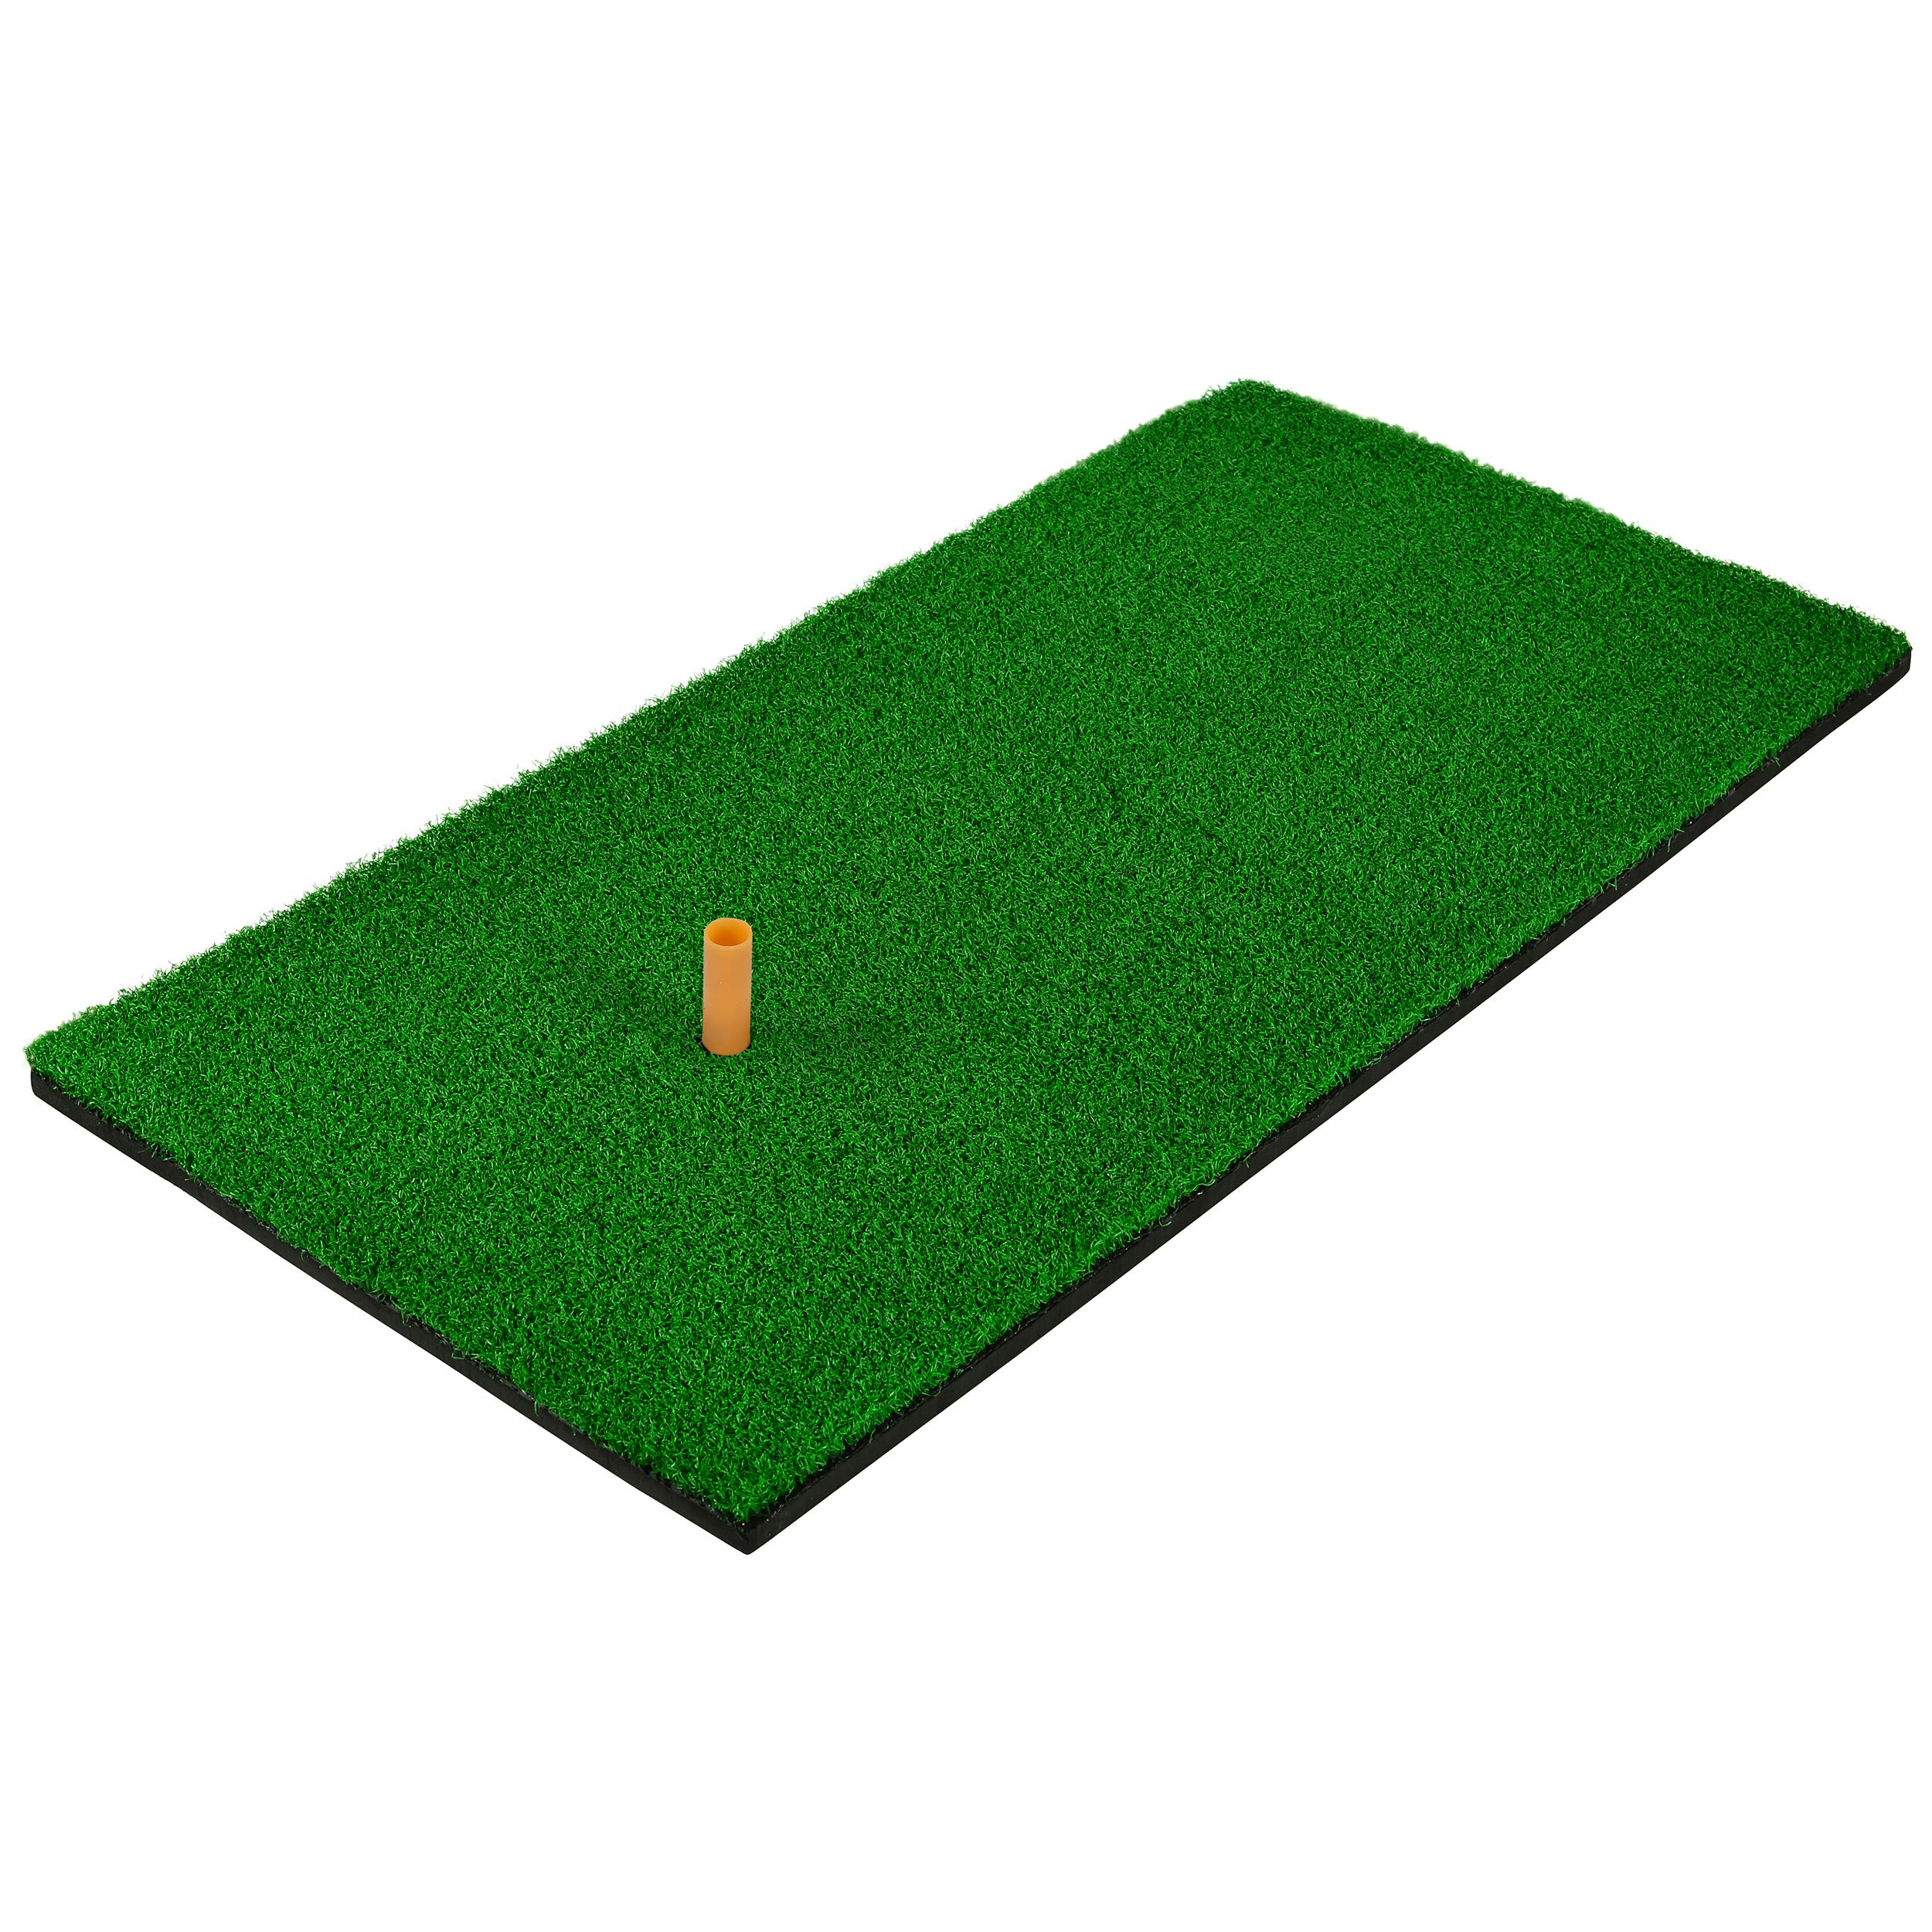 SwingPath Golf Mat 12''x24'' - Ships Flat, Never Rolled by SwingPath